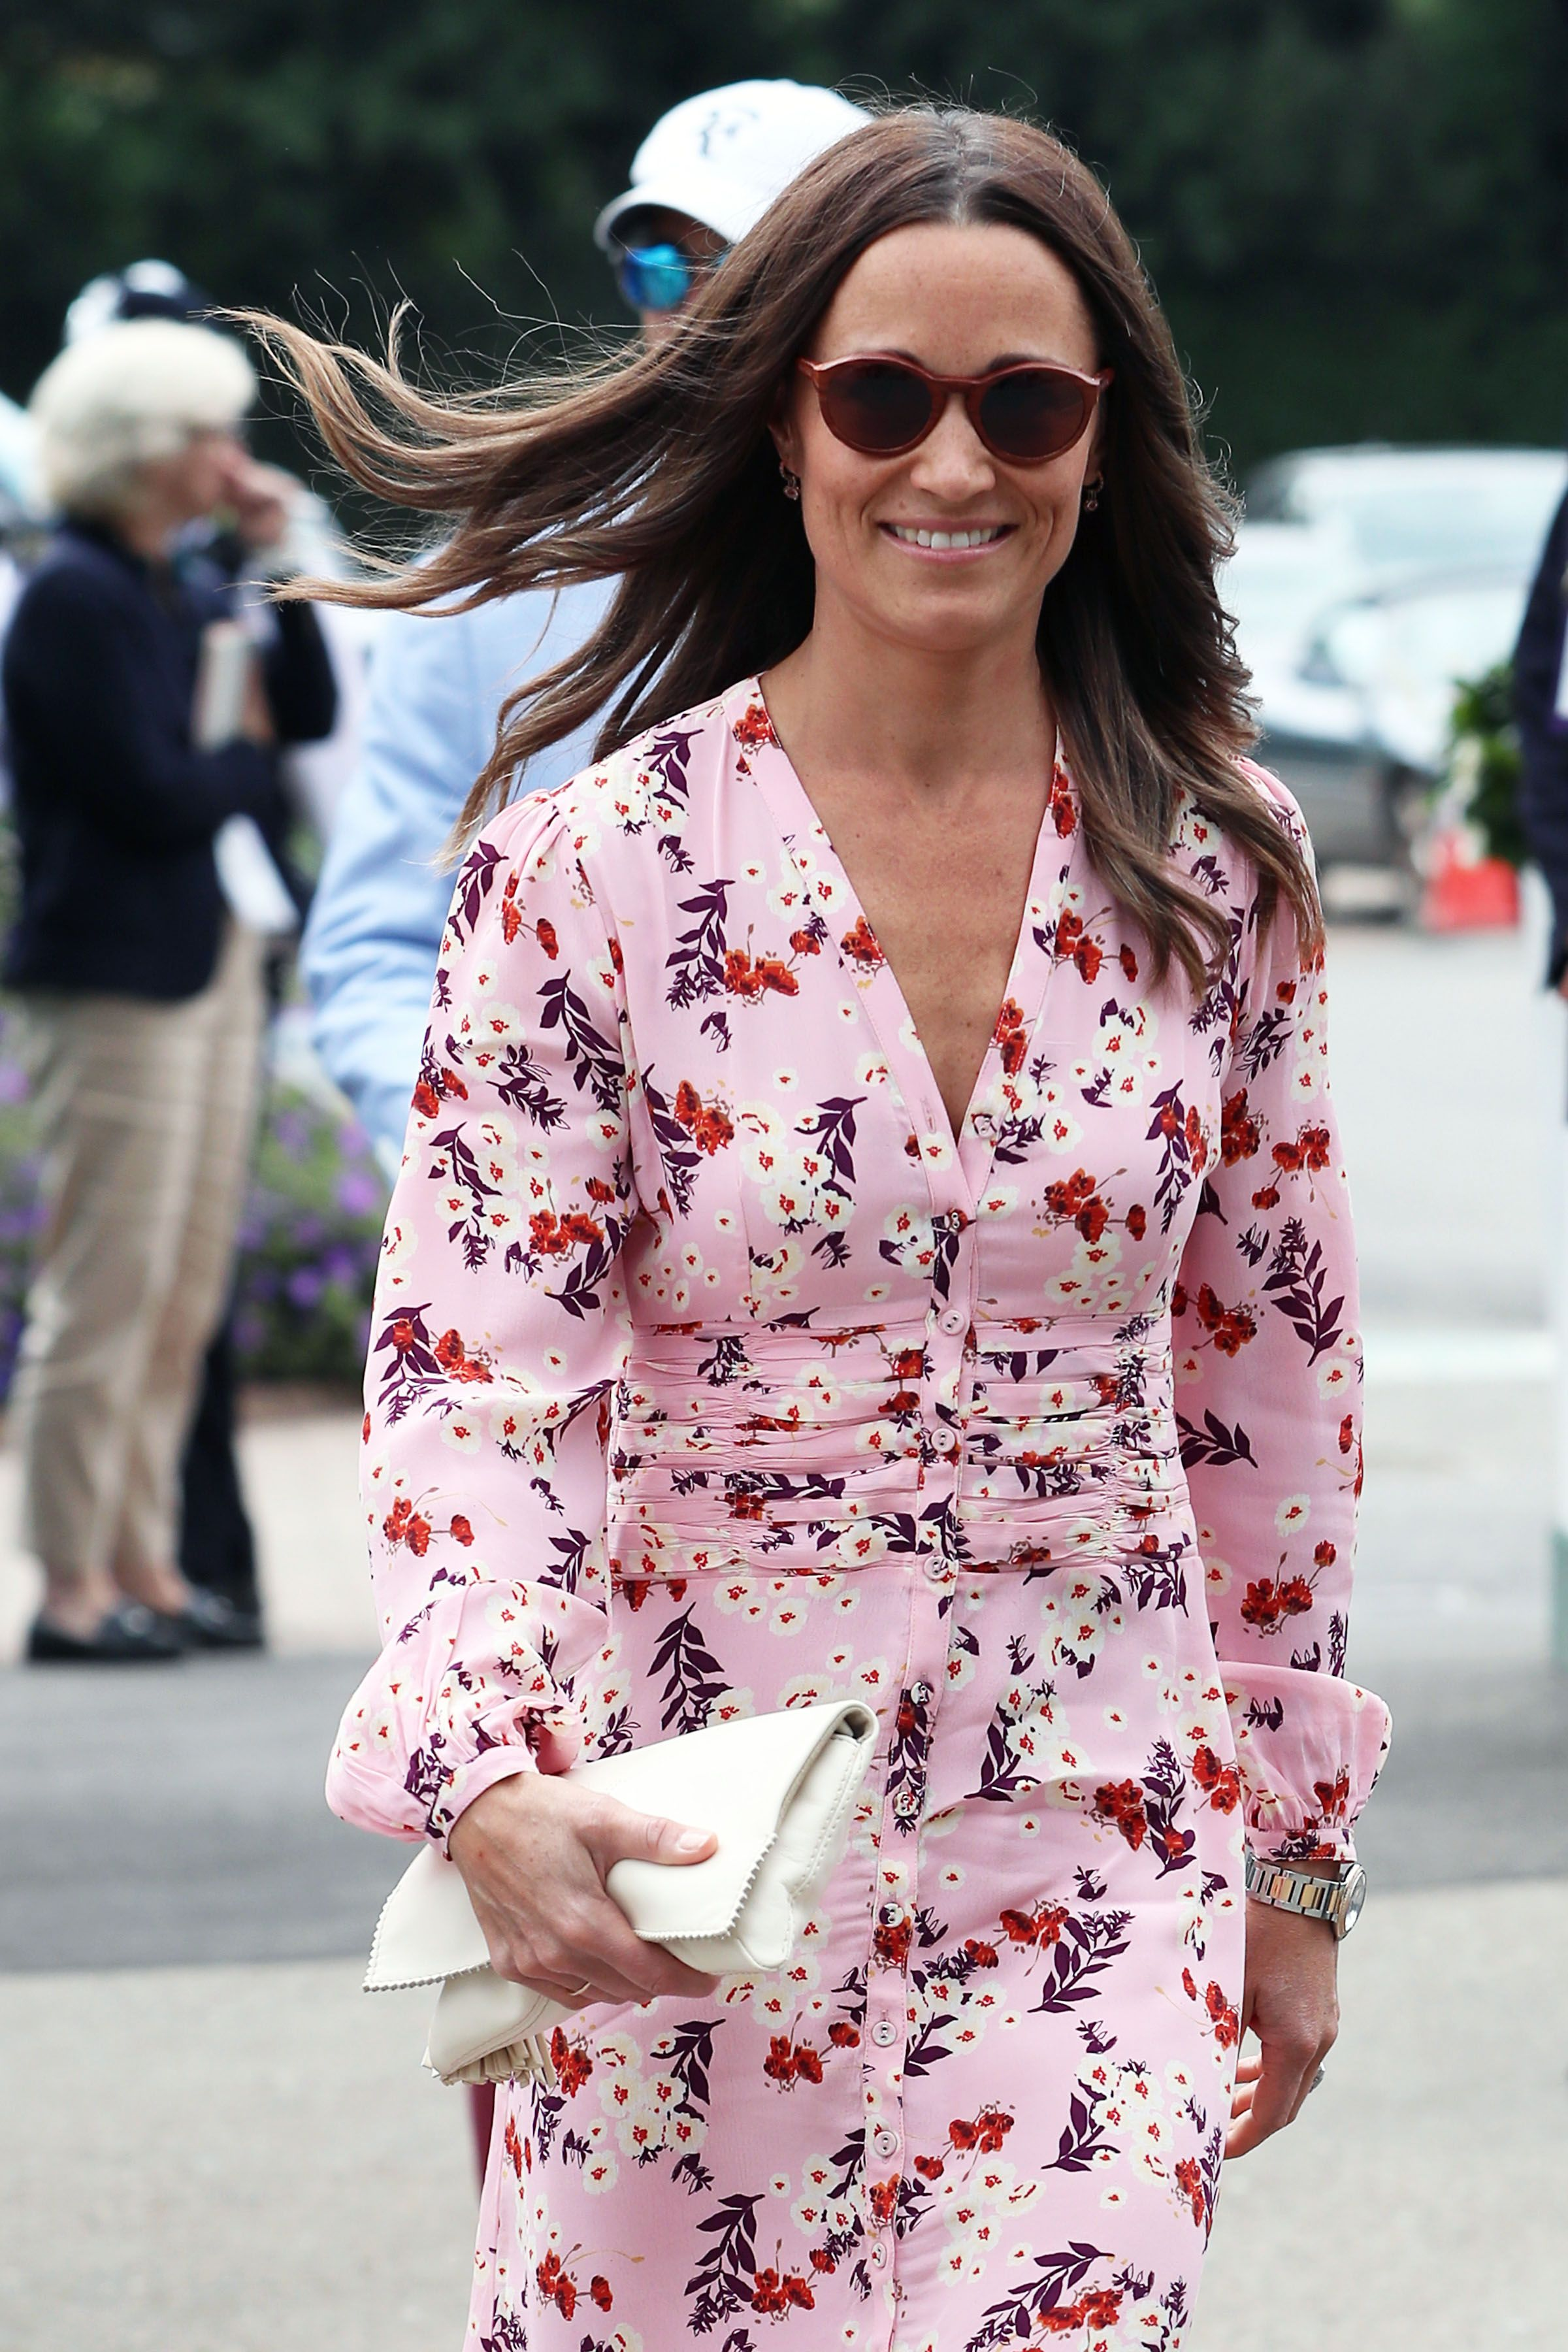 Pippa Middleton Attends Wimbledon Men's Finals with Her Mom, Carole Middleton